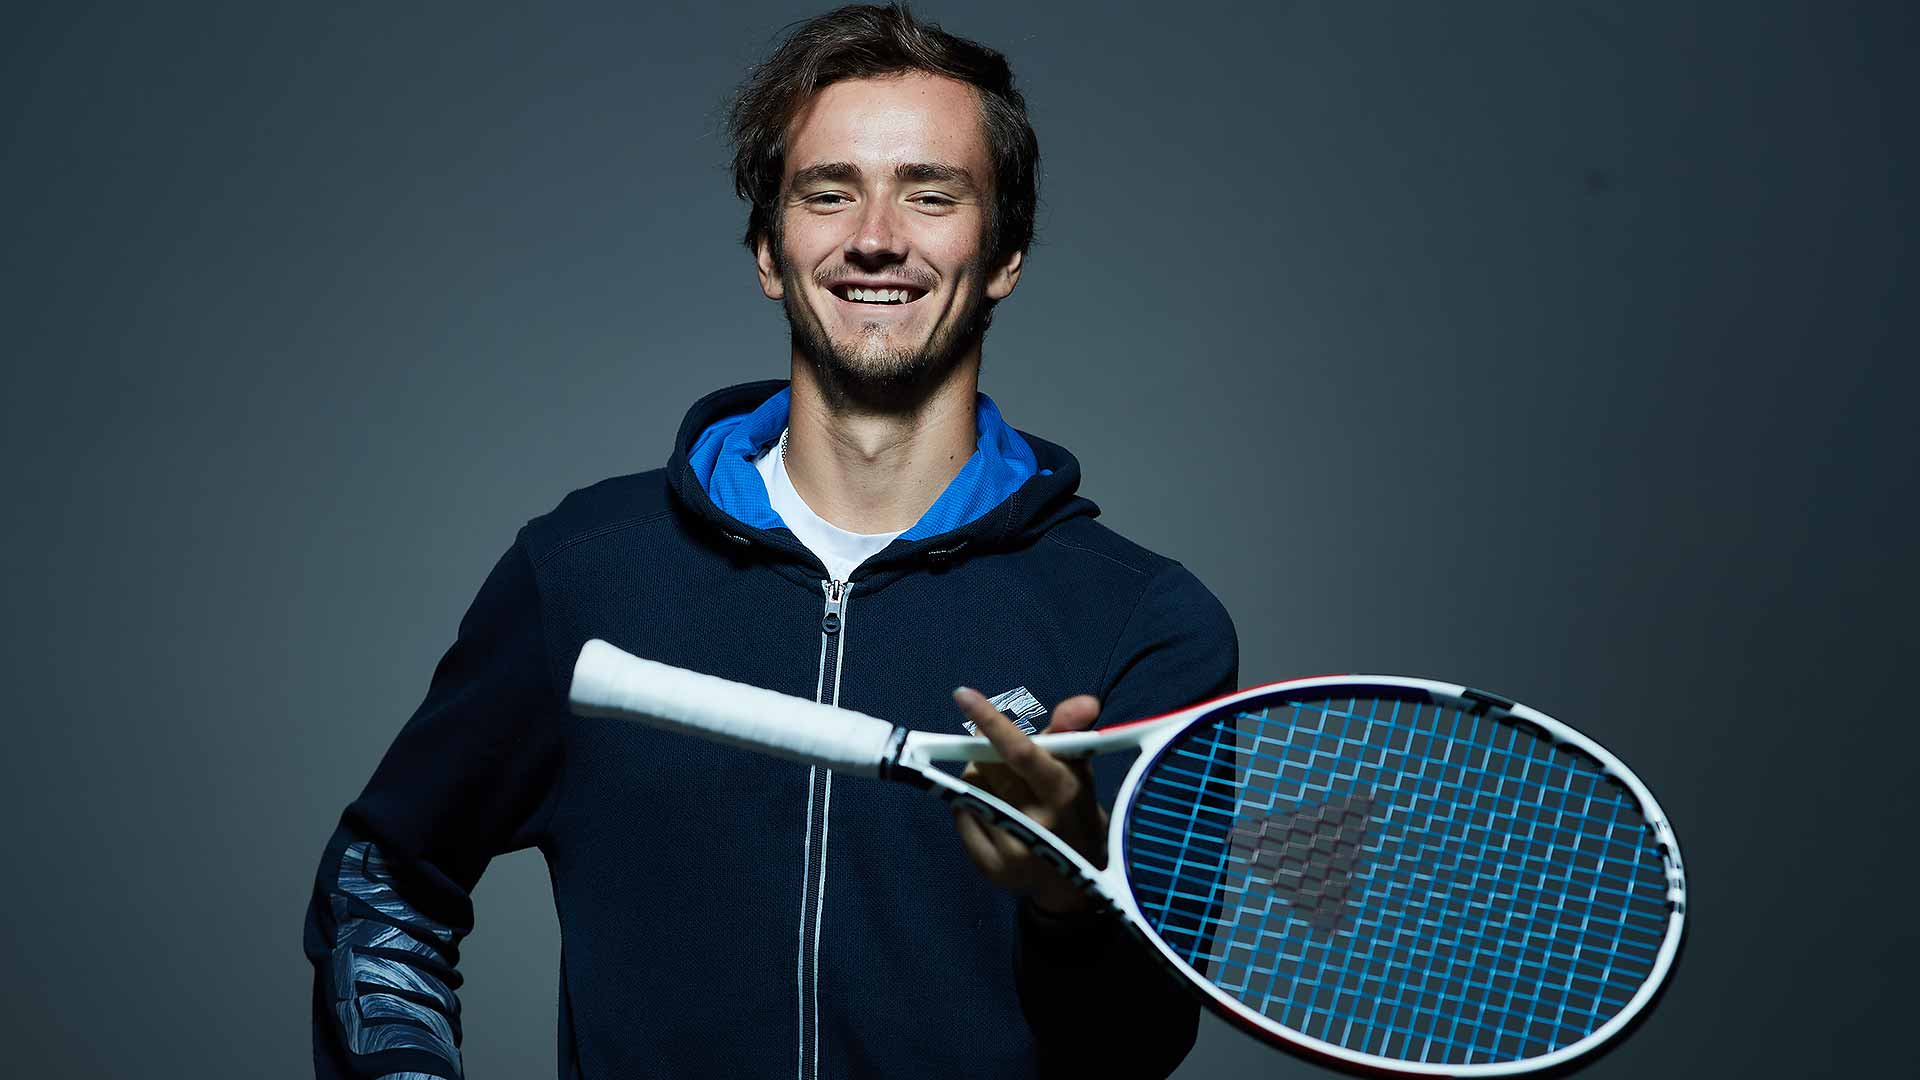 Daniil Medvedev will make his debut at the Nitto ATP Finals next week.